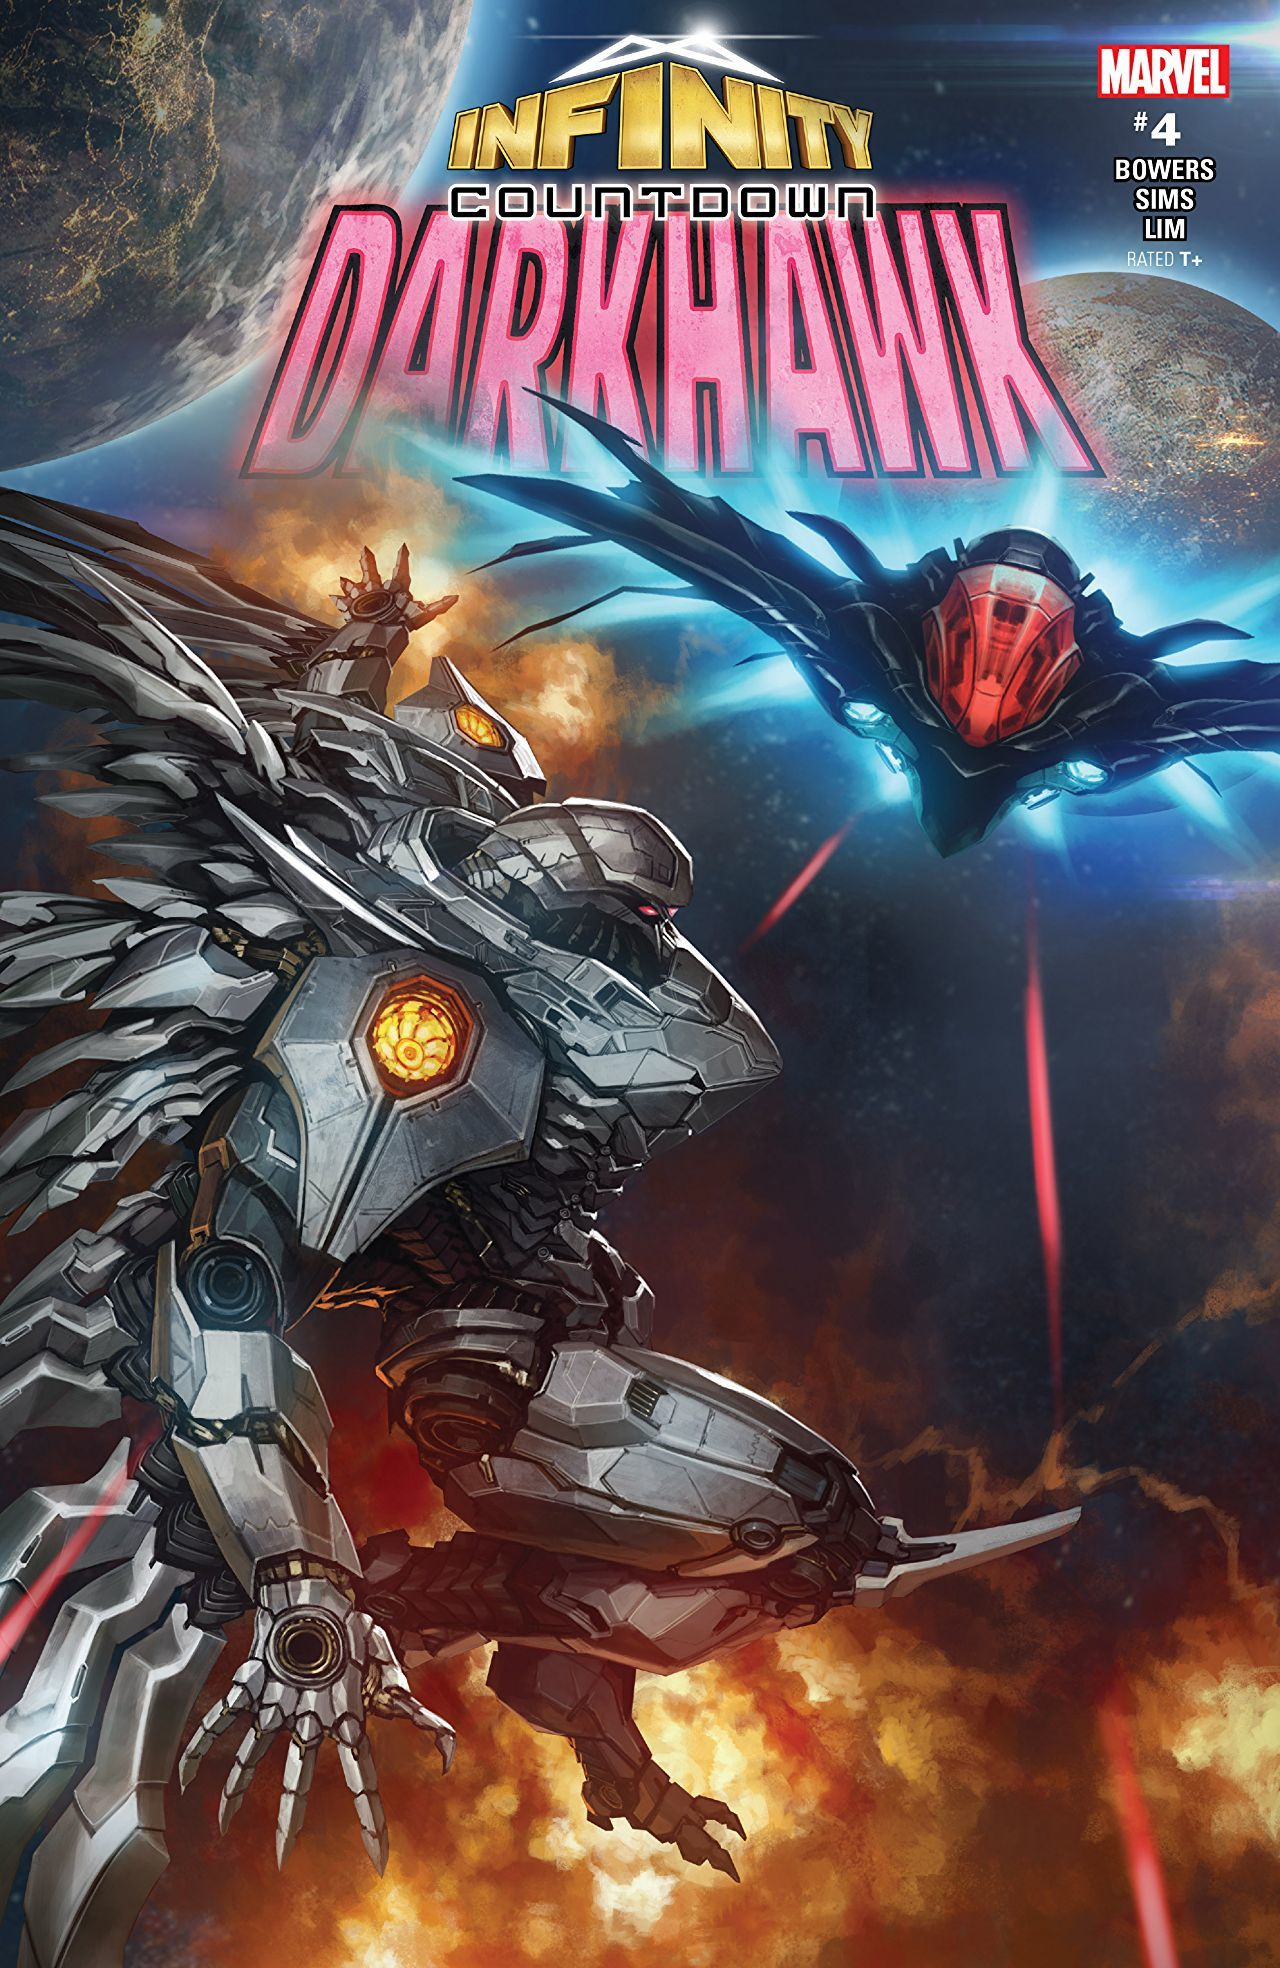 Infinity Countdown: Darkhawk #4 cover by Skan